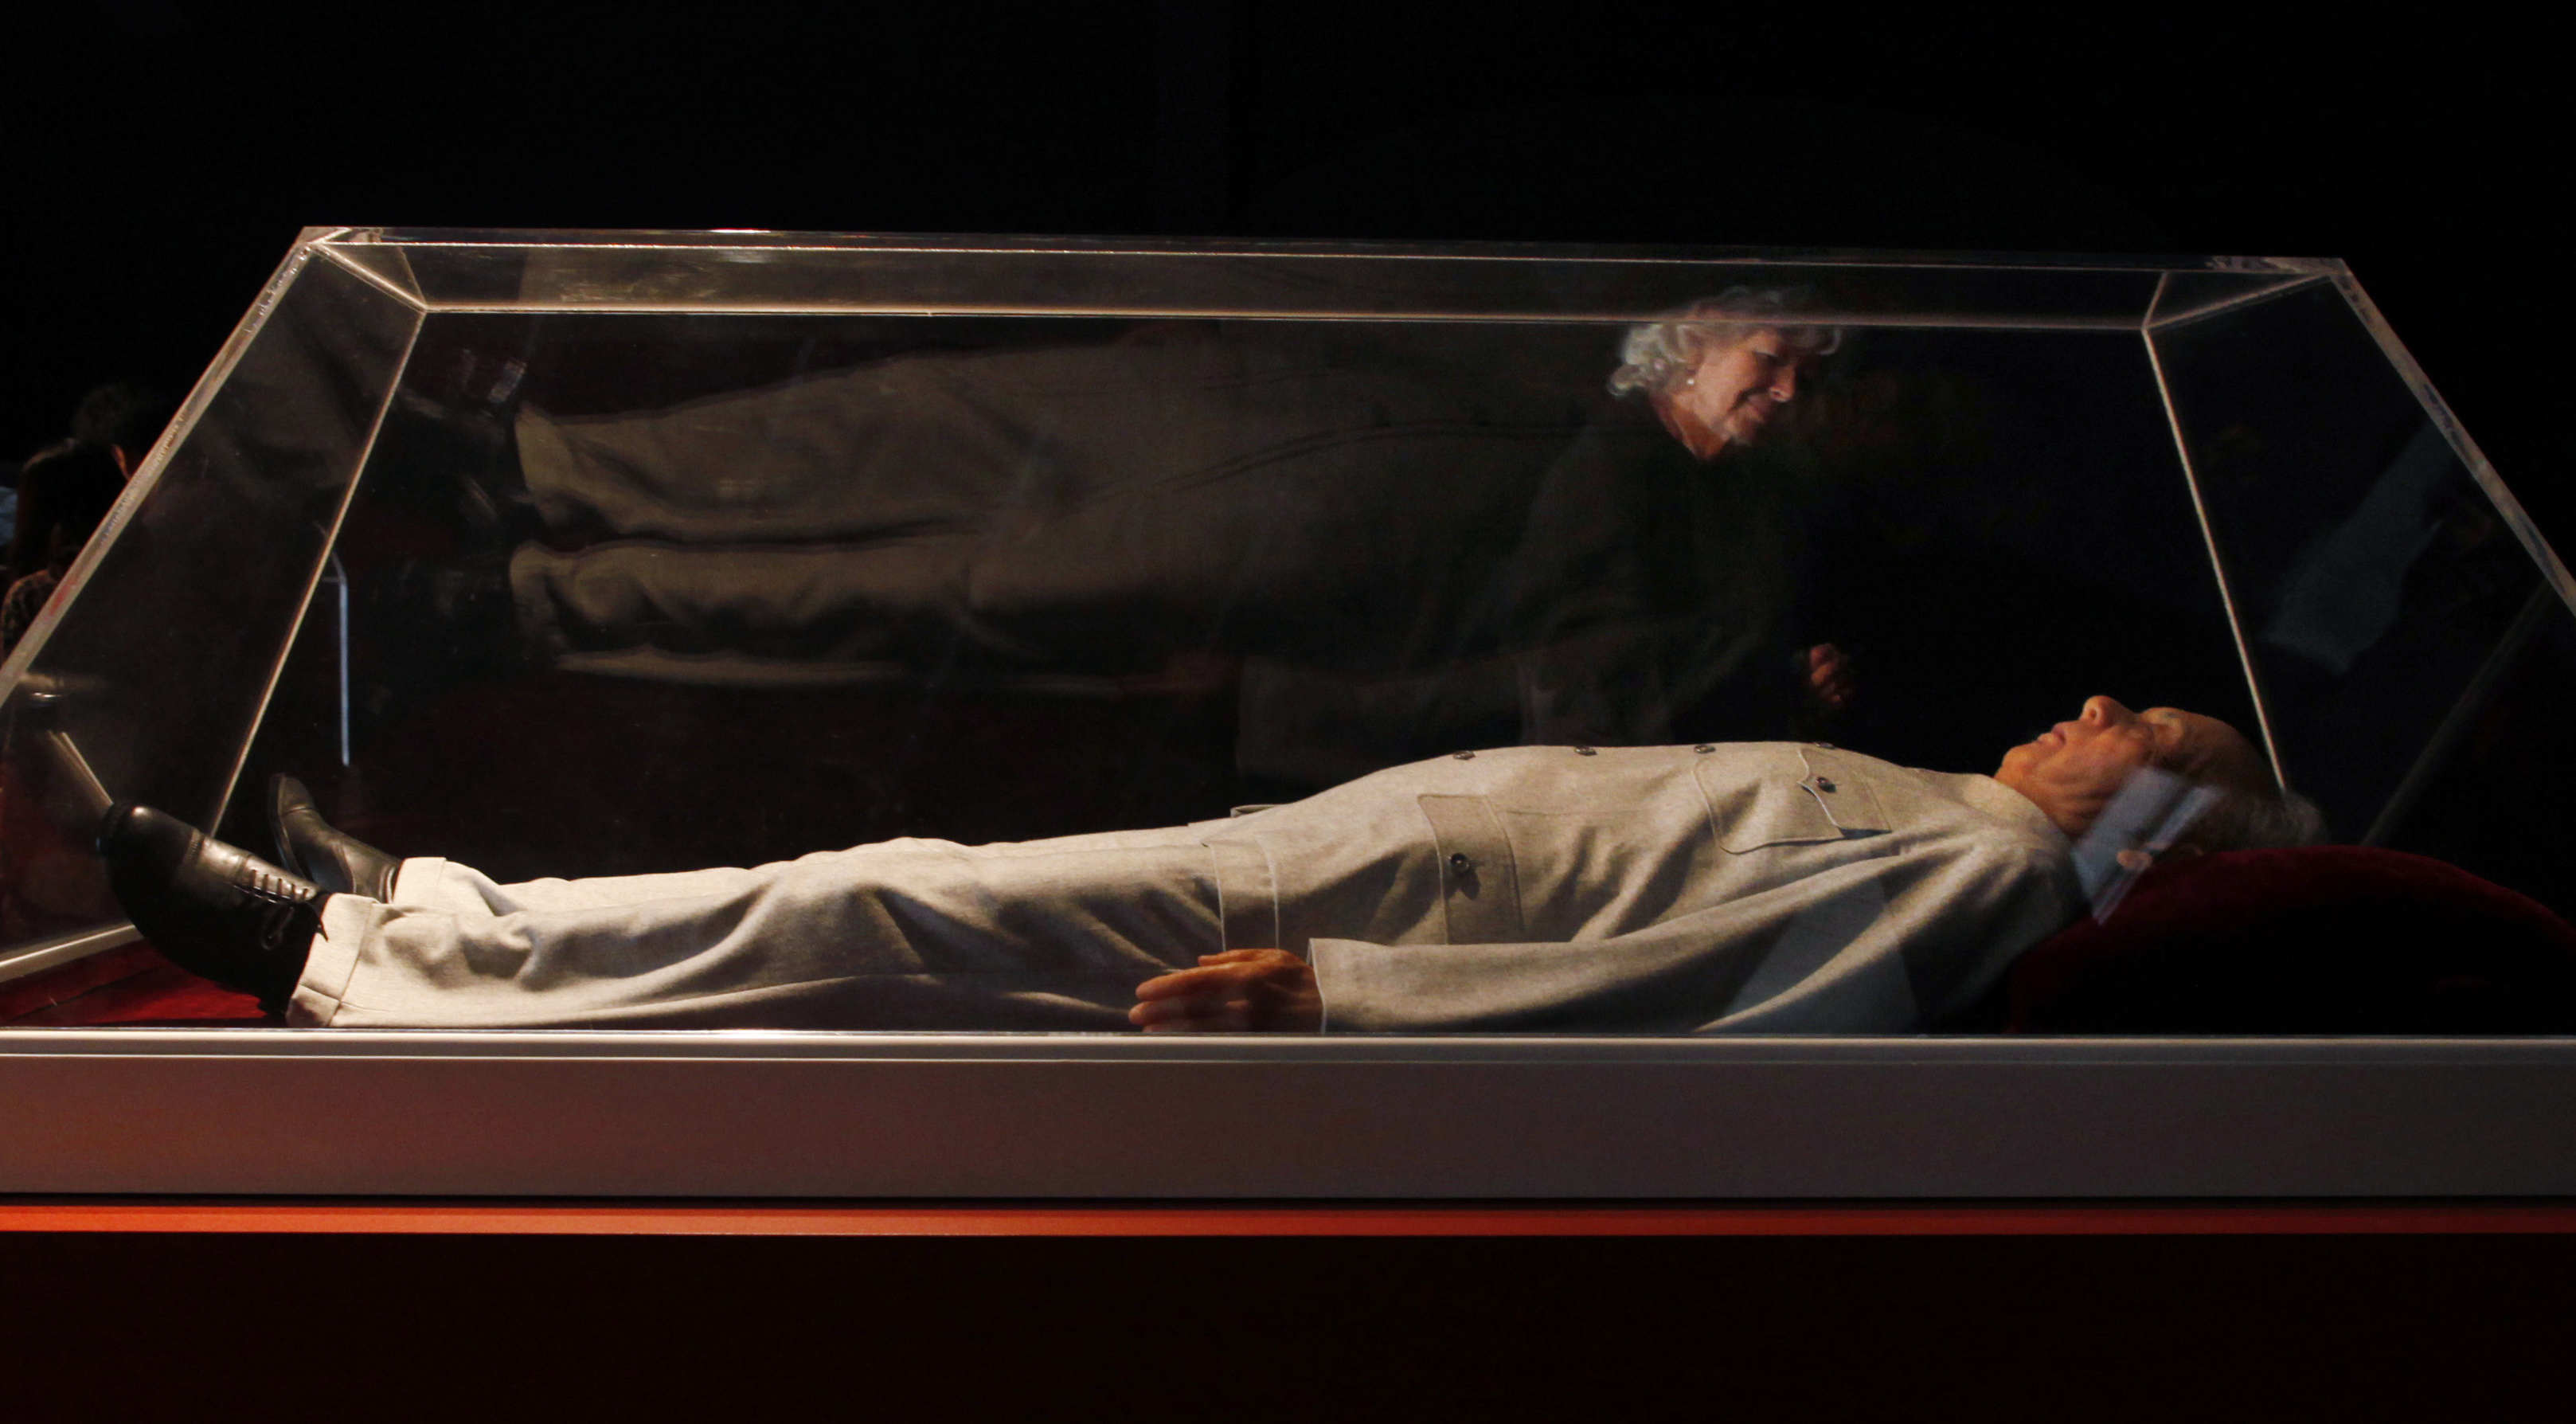 Visitor views a life sized model of a dead Mao Zedong which is part of an installation by Chinese artist Shen Shaomin titled at the 17th Biennale of Sydney